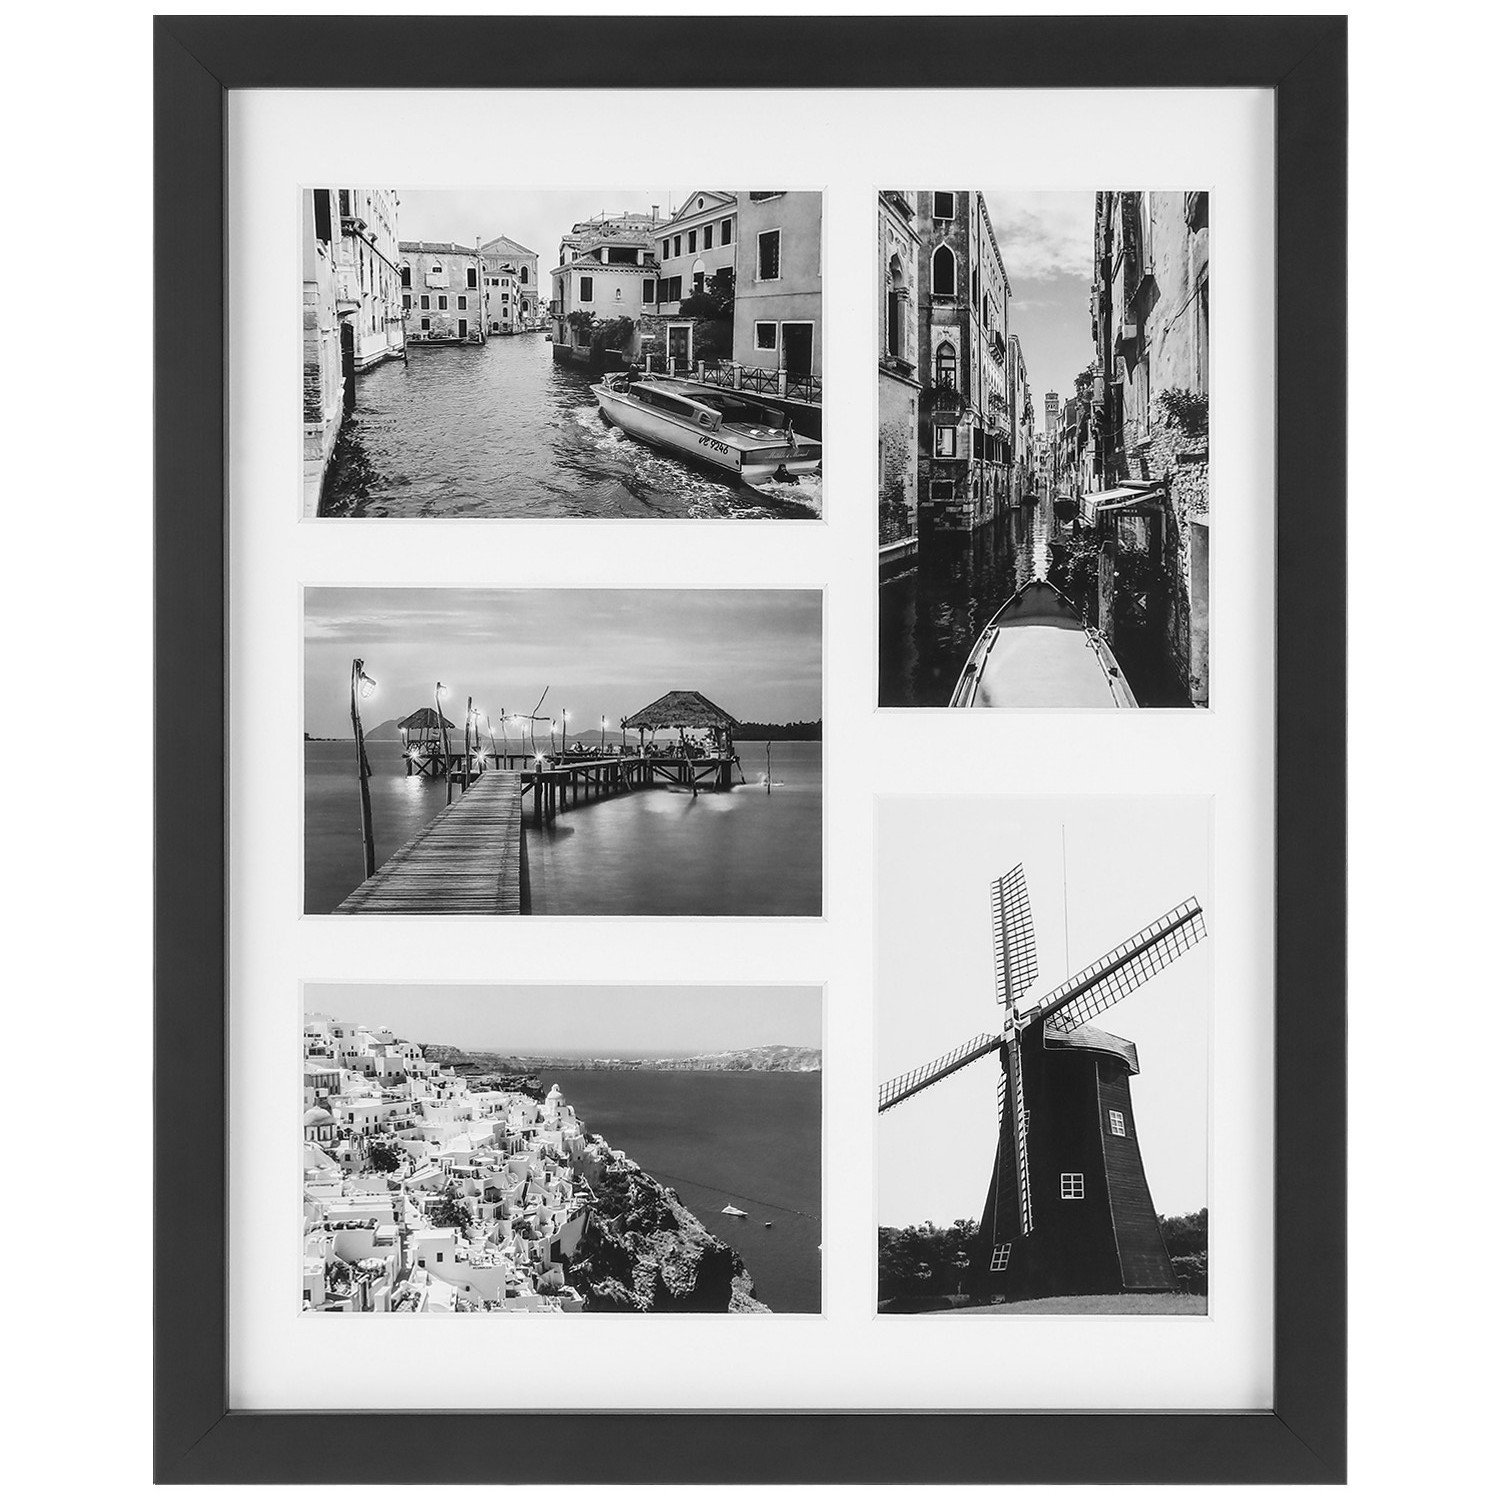 One Wall Tempered Glass 11x14 Collage Picture Frame with Mats for Five 4x6 Inch Photos - Wall Mounting Material Included